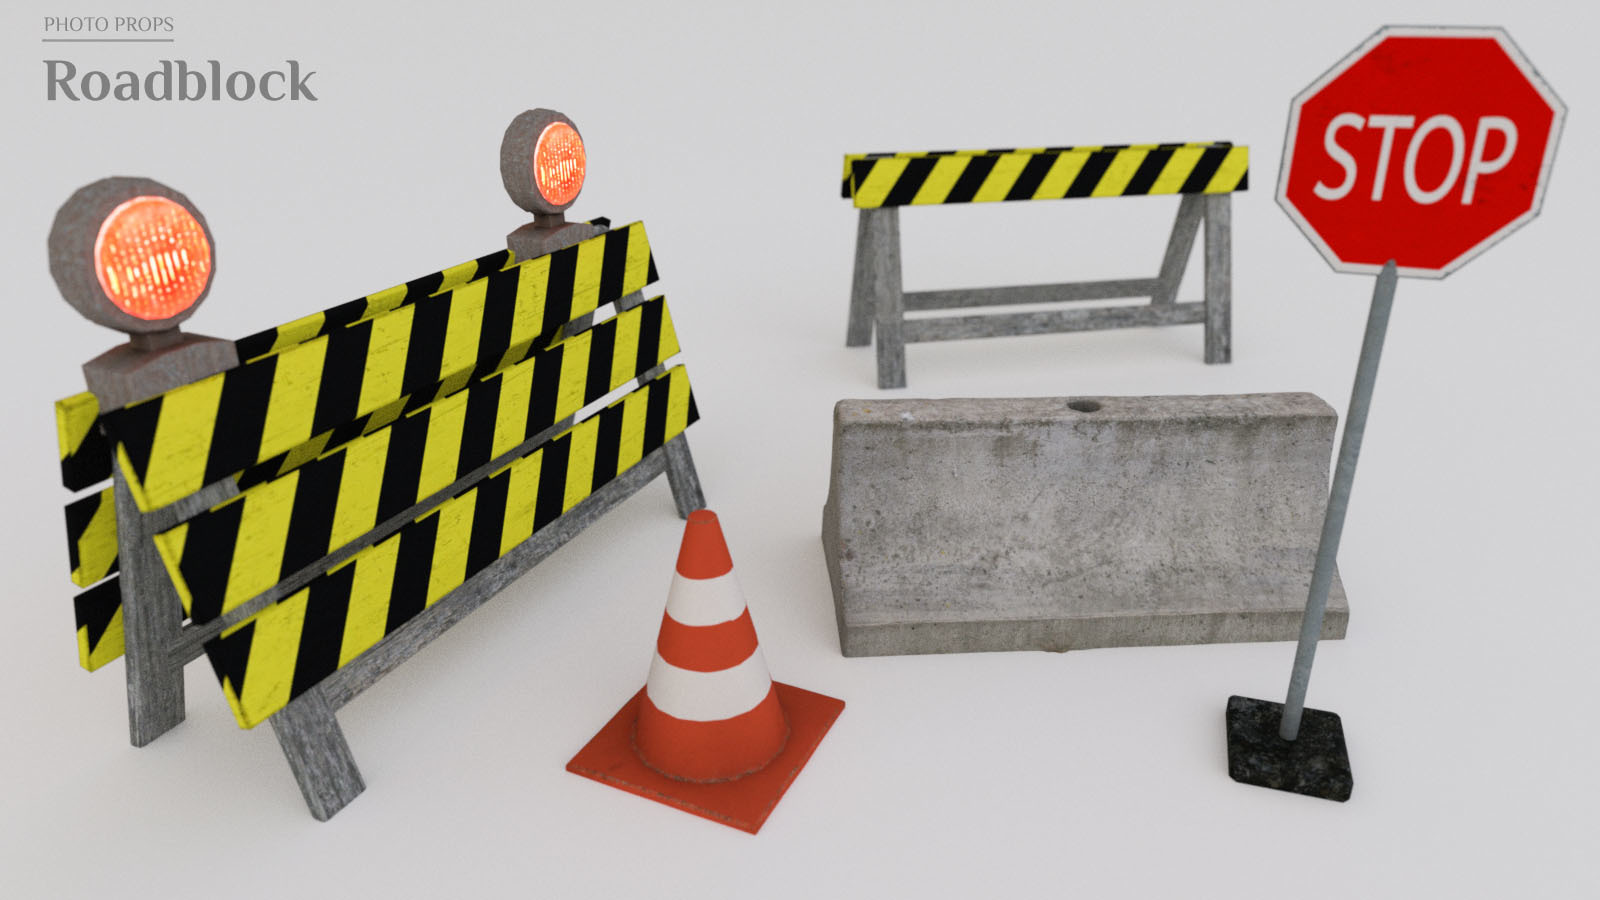 Photo Props: Roadblock - Extended License by ShaaraMuse3D